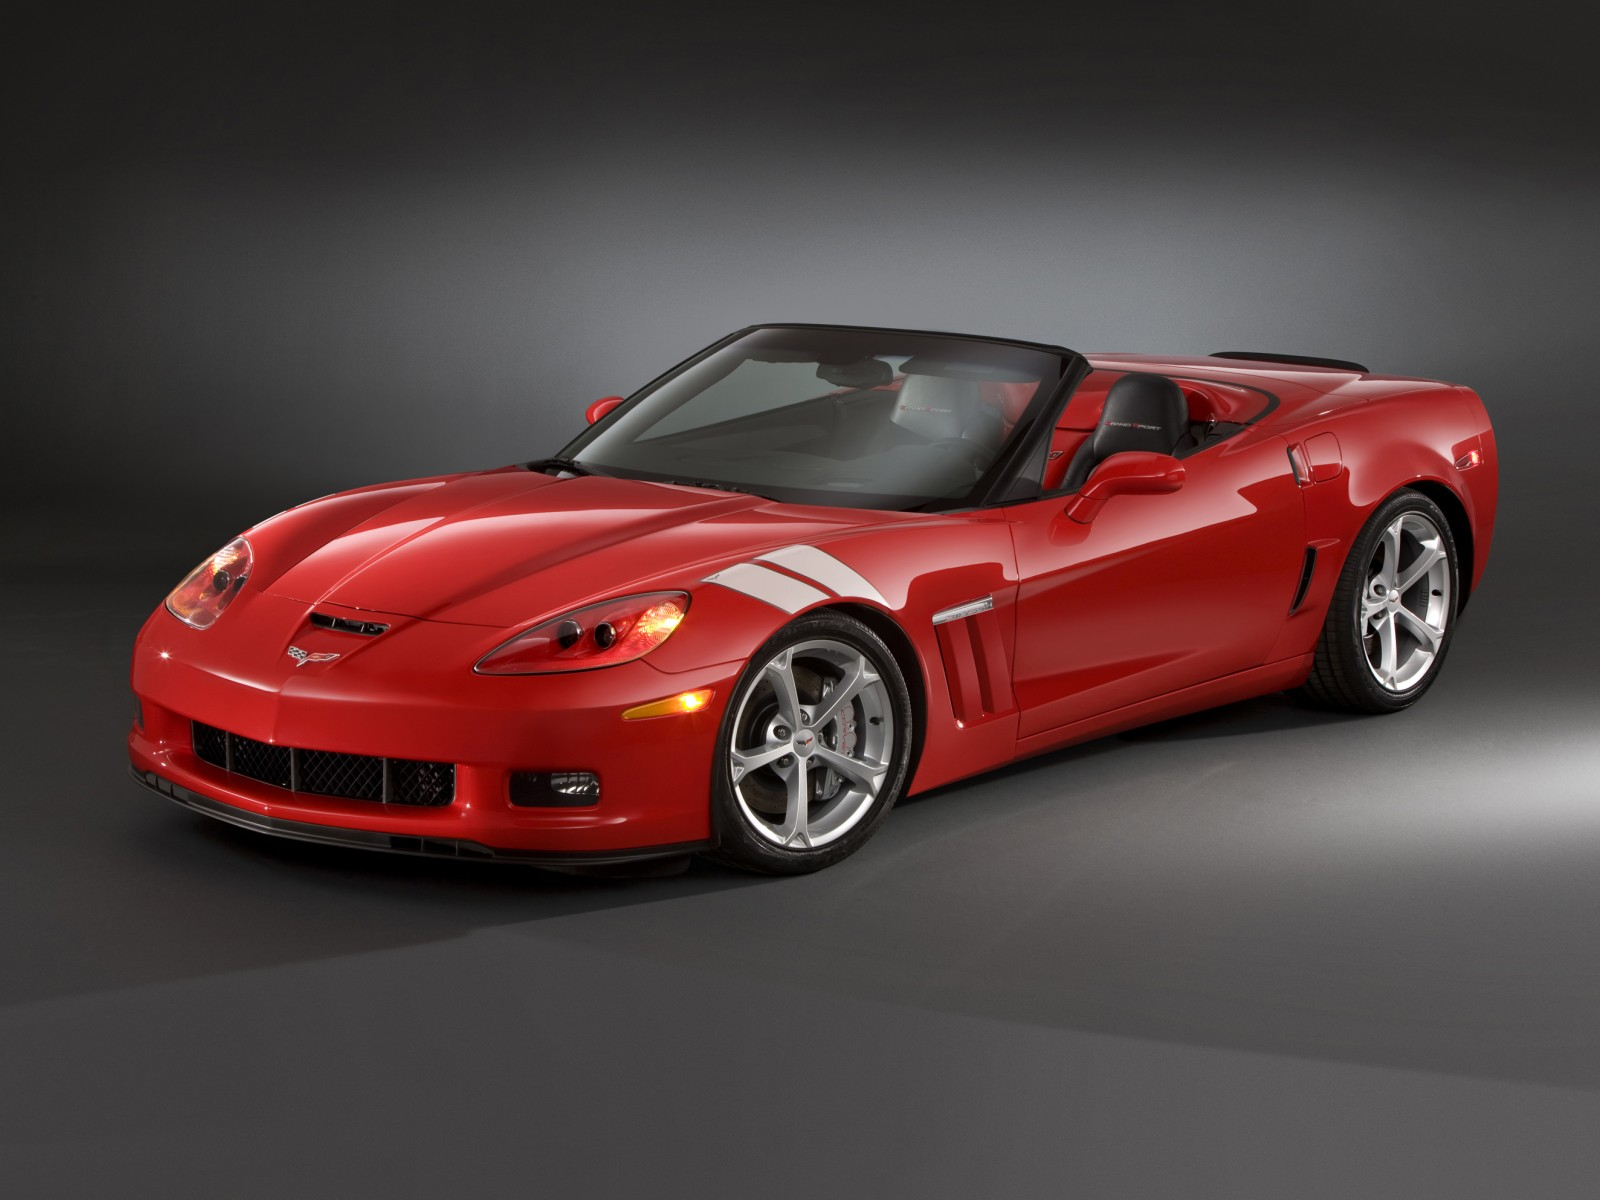 2010 chevrolet corvette grand sport pictures specifications wallpapers interiors and exteriors. Black Bedroom Furniture Sets. Home Design Ideas